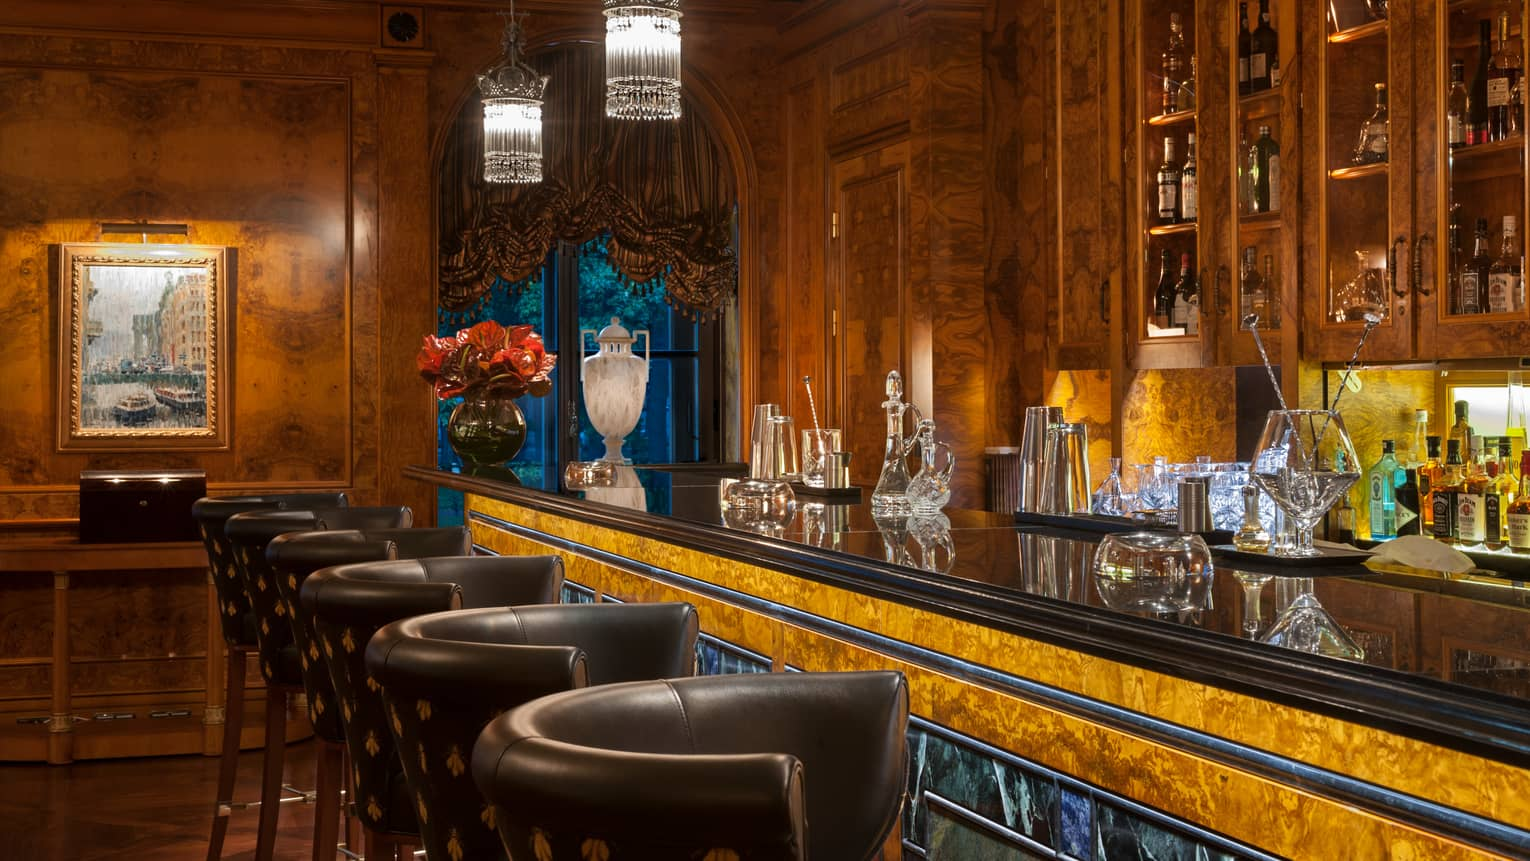 Xander lounge, long wood-grain bar lined with leather stools, crystal lights, jars